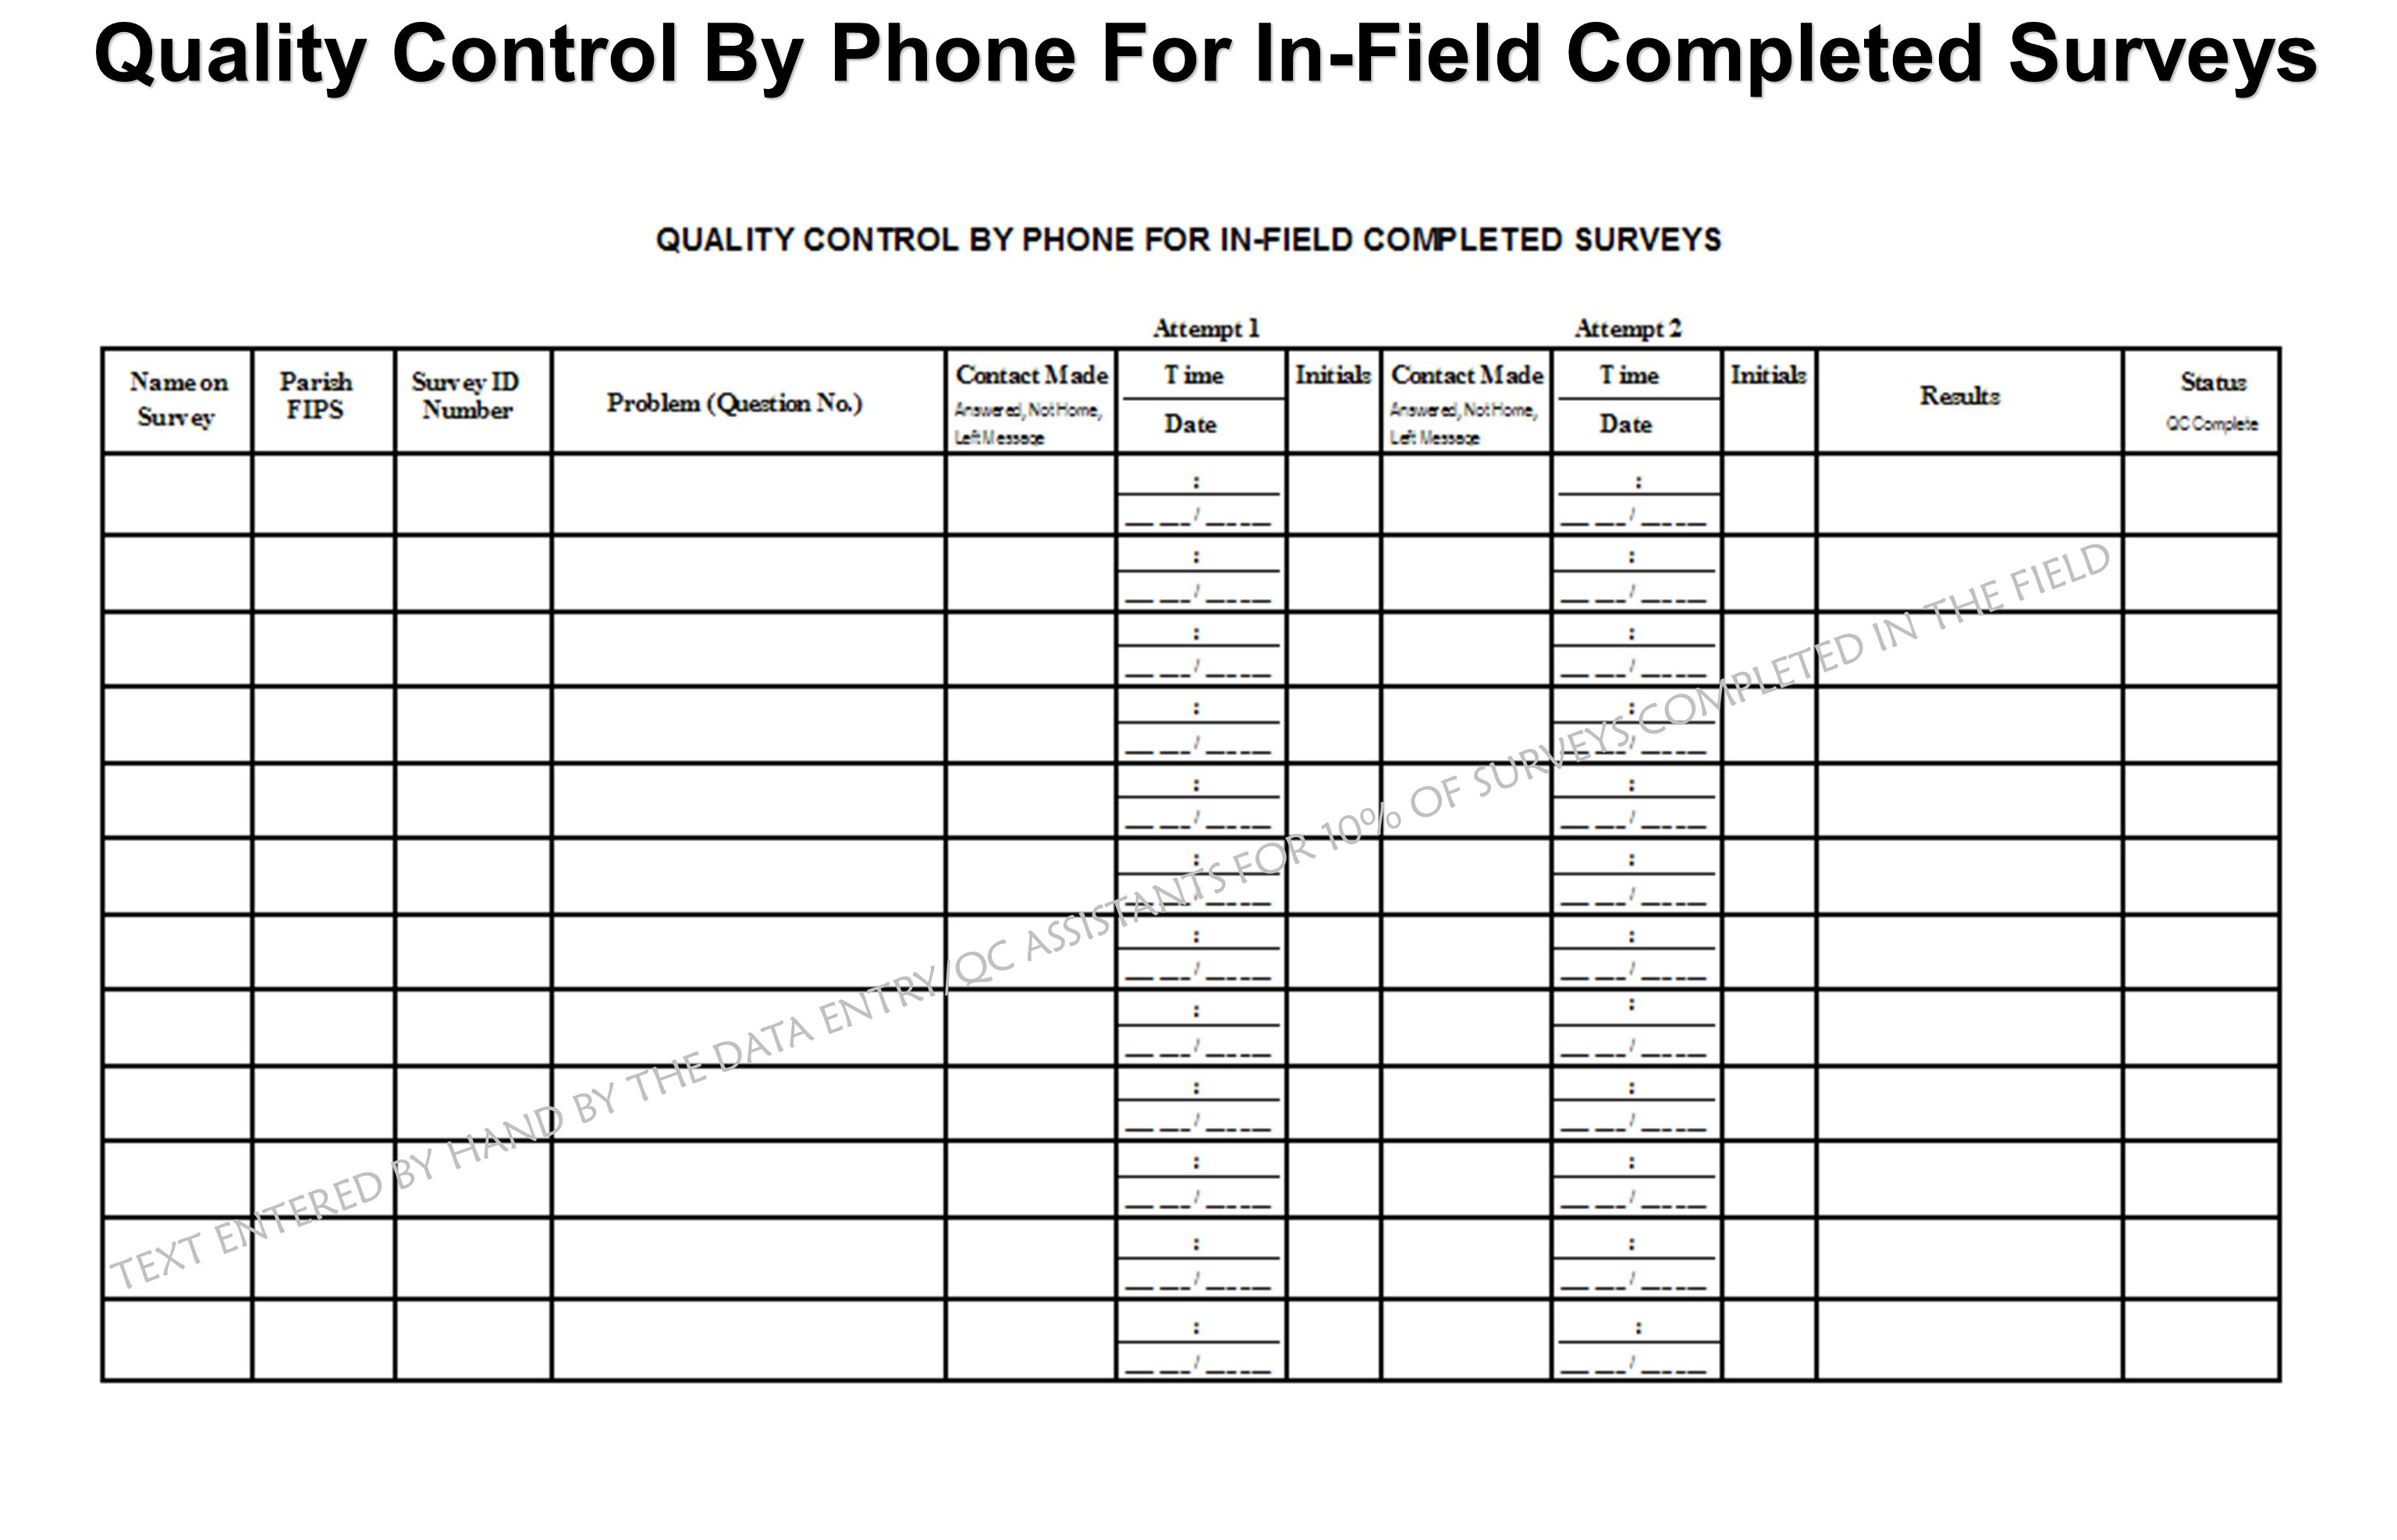 Quality Control By Phone For In-Field Completed Surveys TEXT ENTERED BY HAND BY THE DATA ENTRY/QC ASSISTANTS FOR 10% OF SURVEYS COMPLETED IN THE FIELD